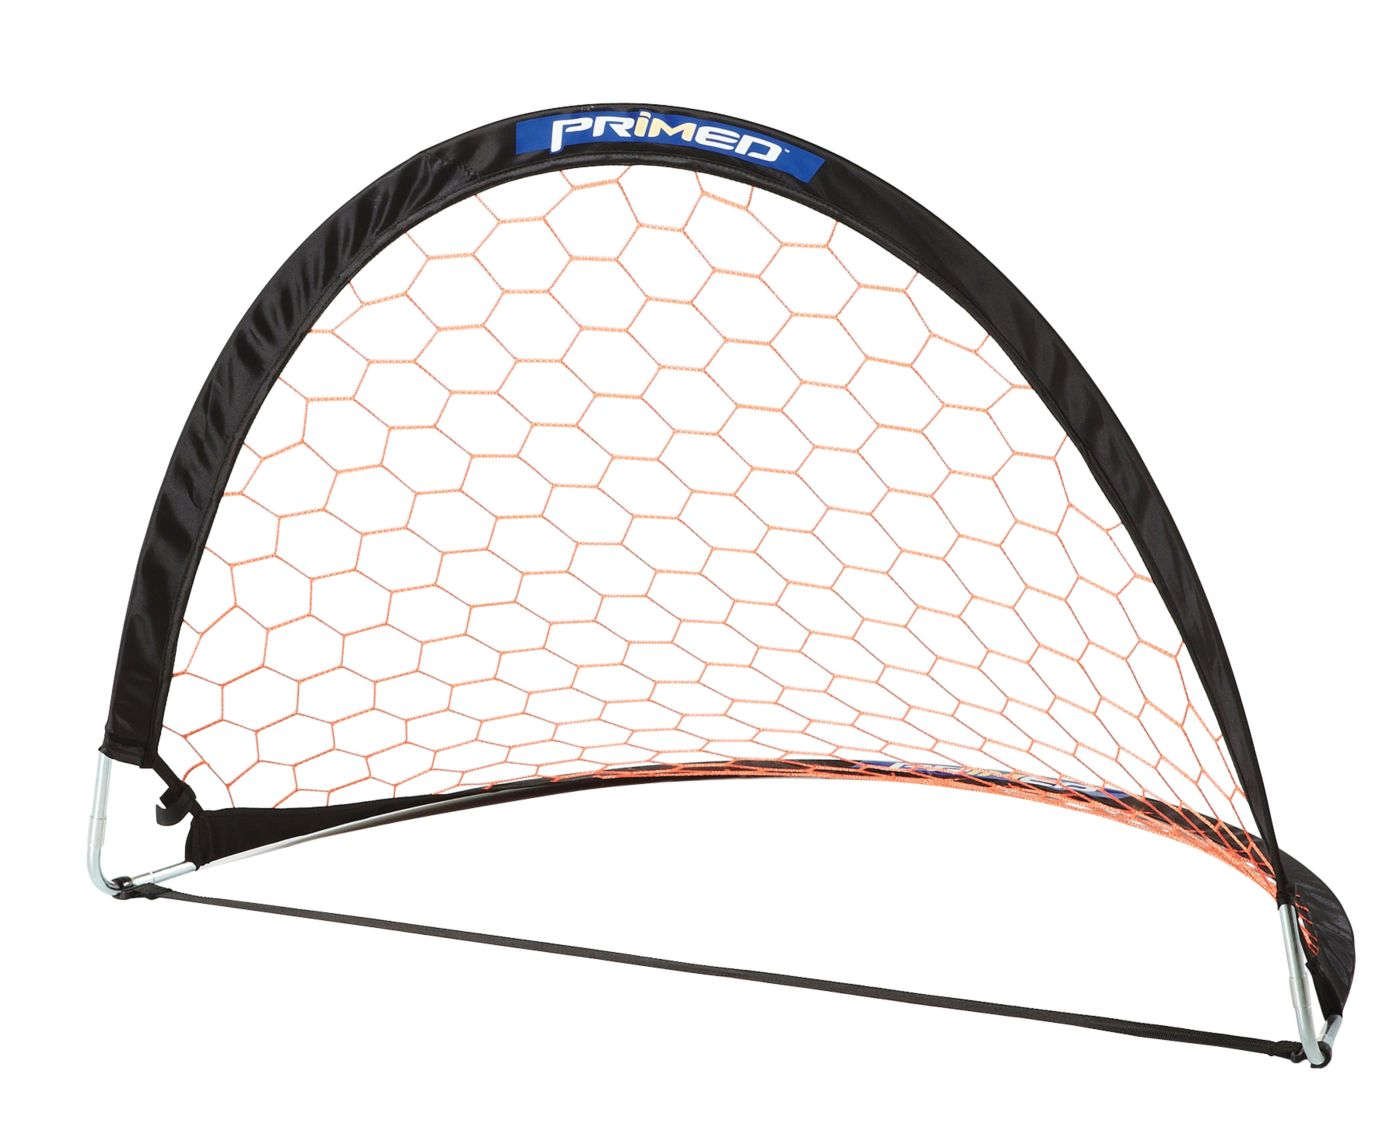 PRIMED 3' x 2' Pop-Up Soccer Goal